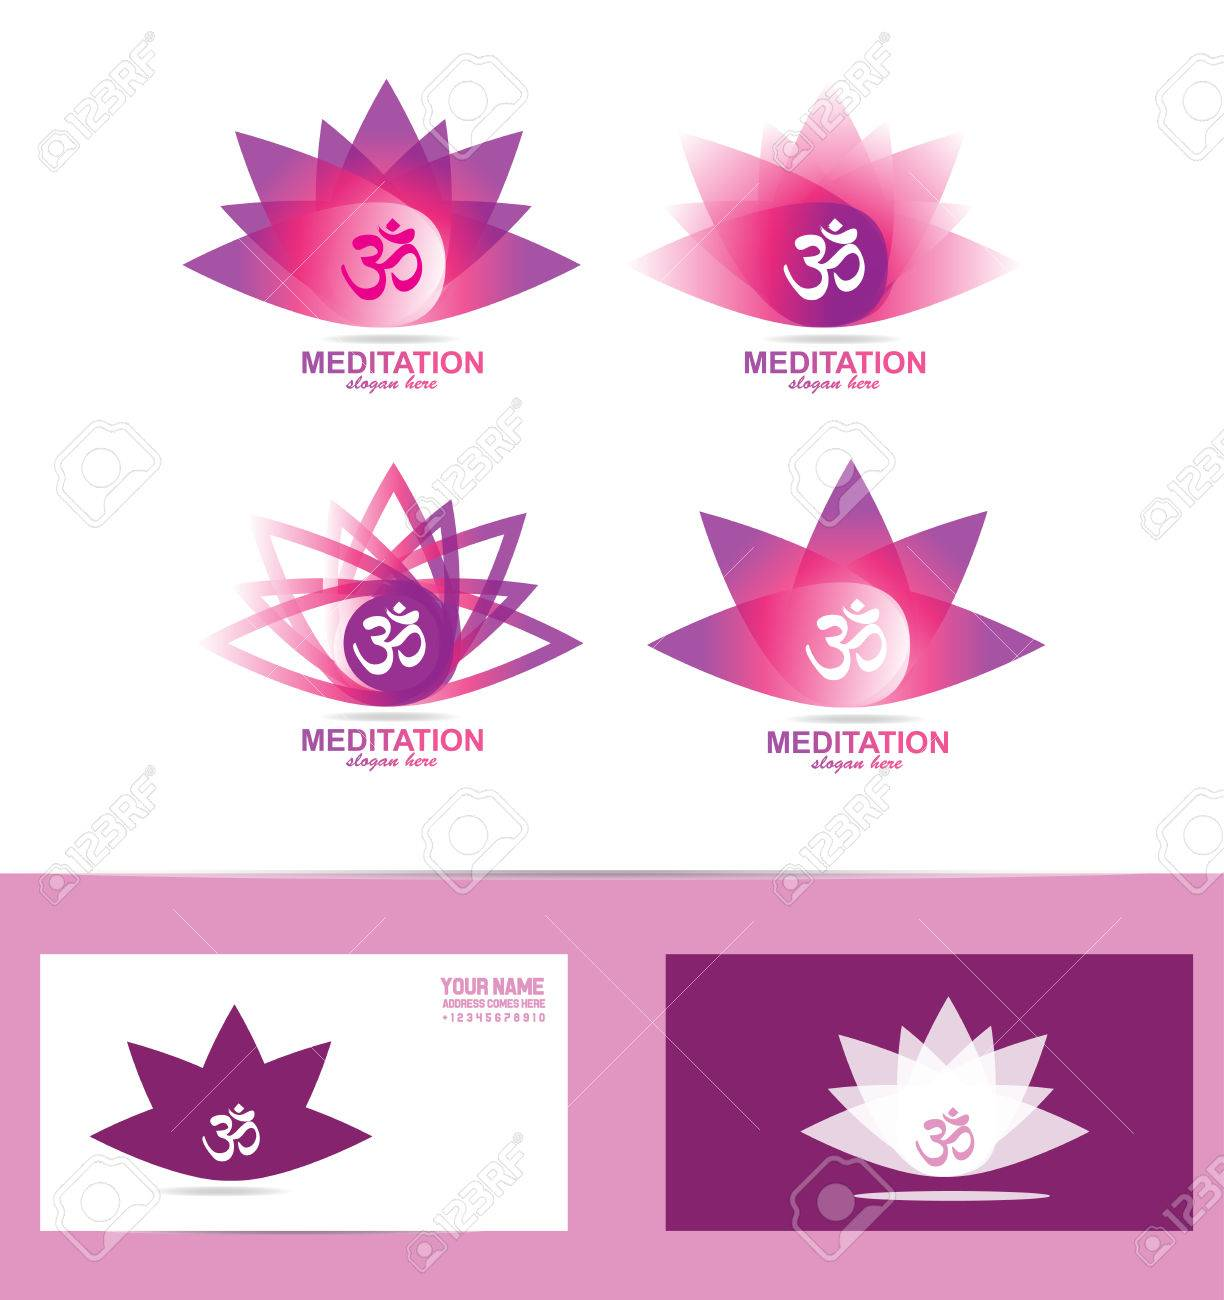 Icon element template lotus flower aum om symbol royalty free icon element template lotus flower aum om symbol stock vector 53329885 mightylinksfo